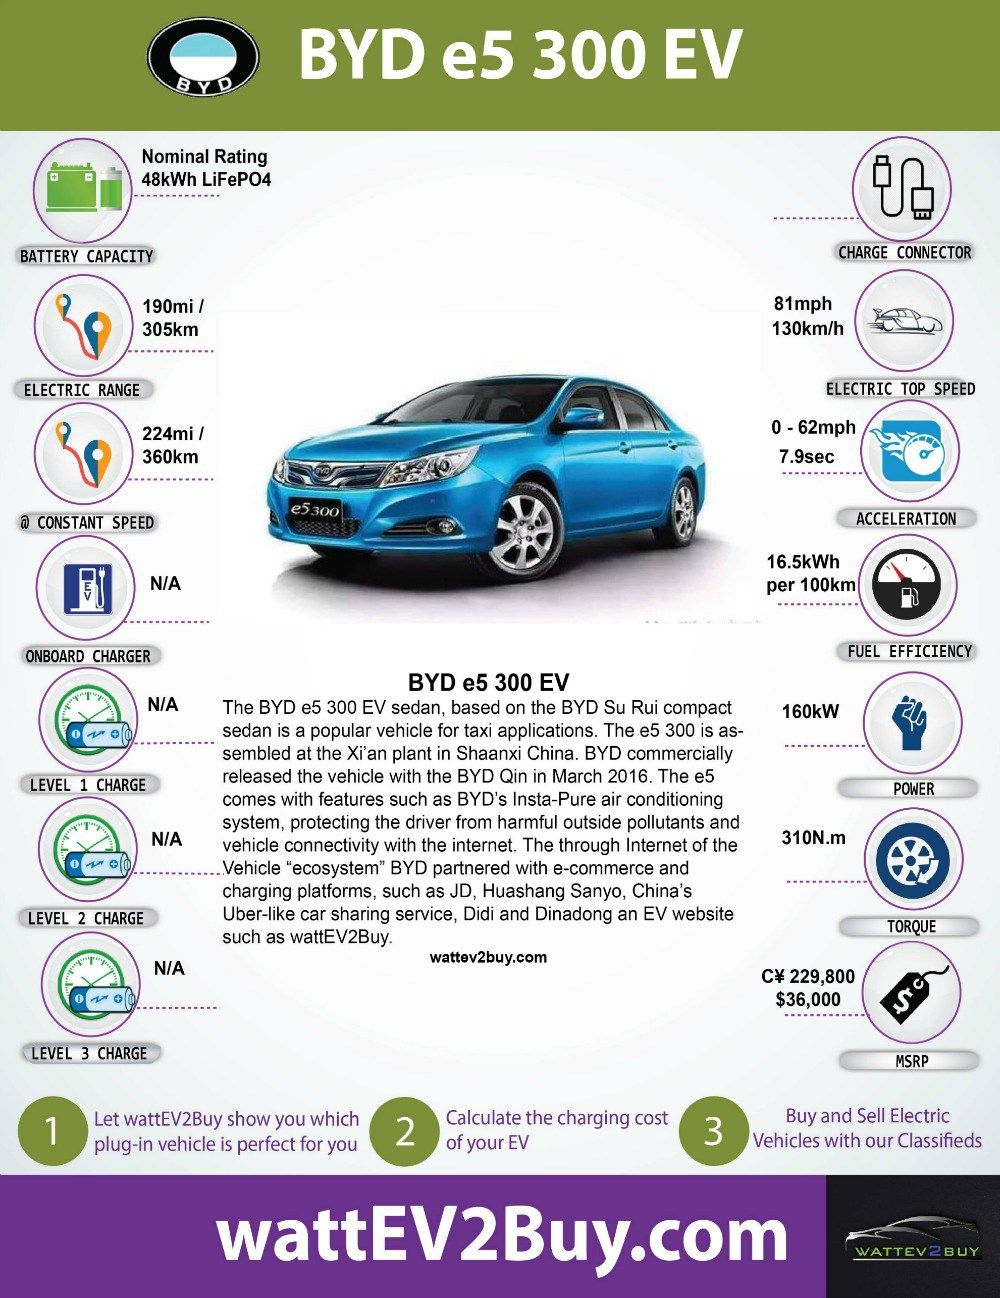 Byd E5 300 Ev Performance Specificationore Electric Cars Specs And